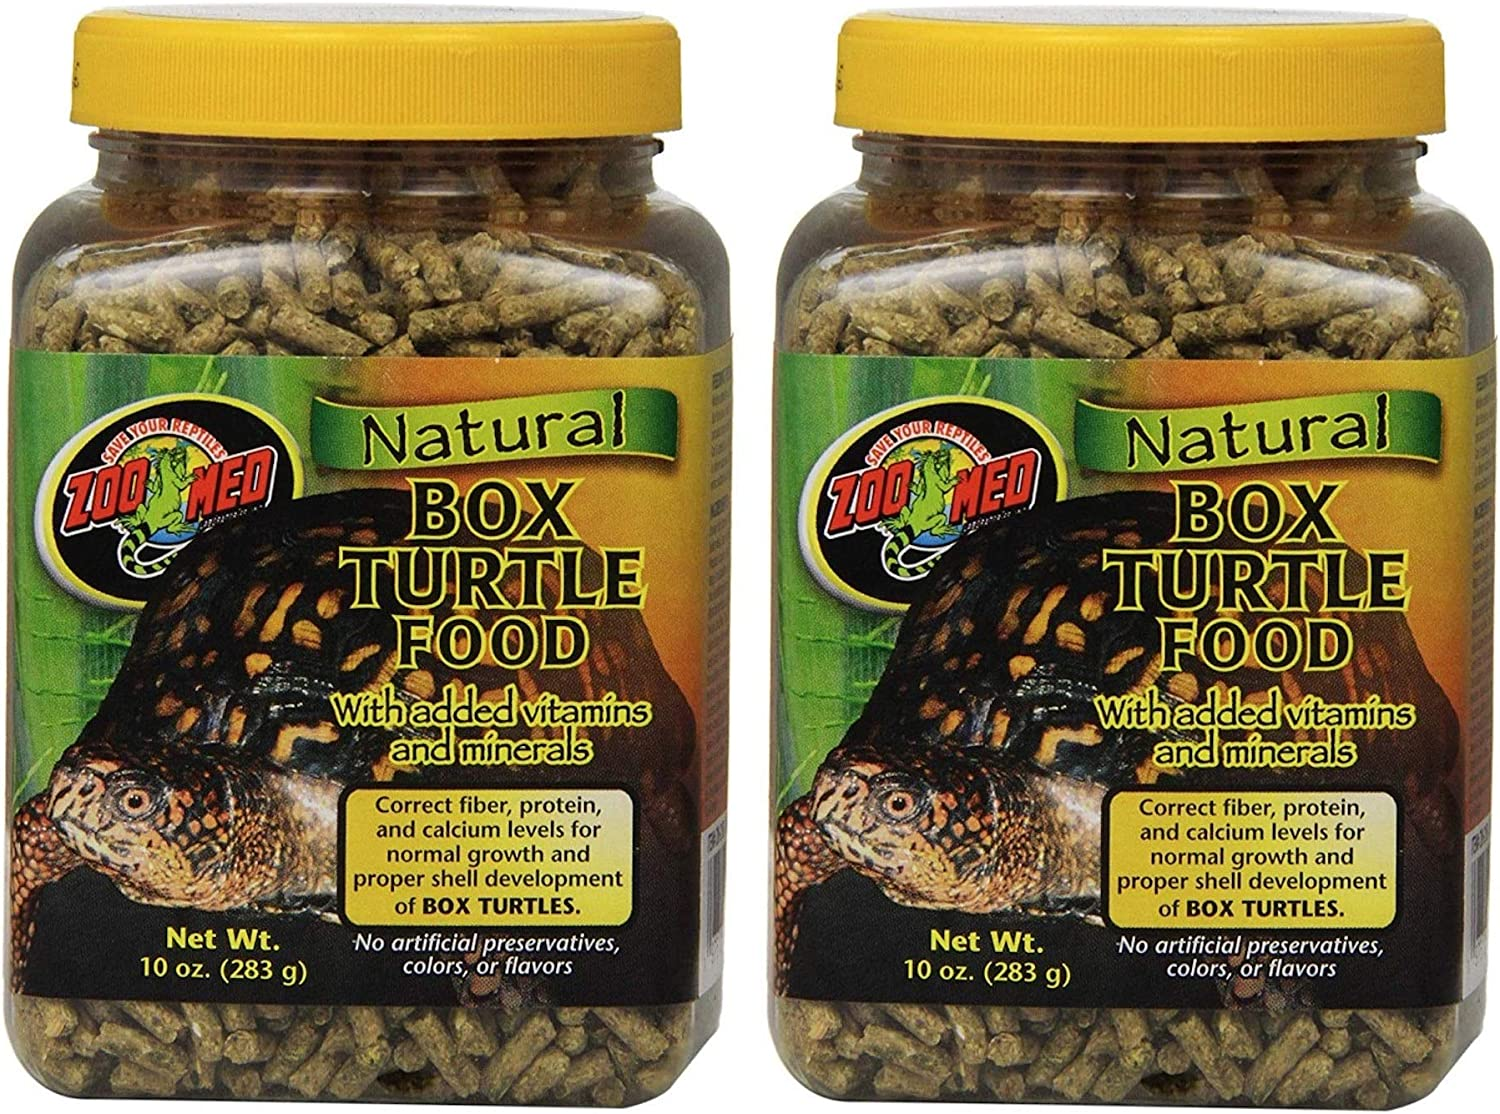 Zoo Med 2 Pack of Natural Box Turtle Food, 10 Ounces Per Container